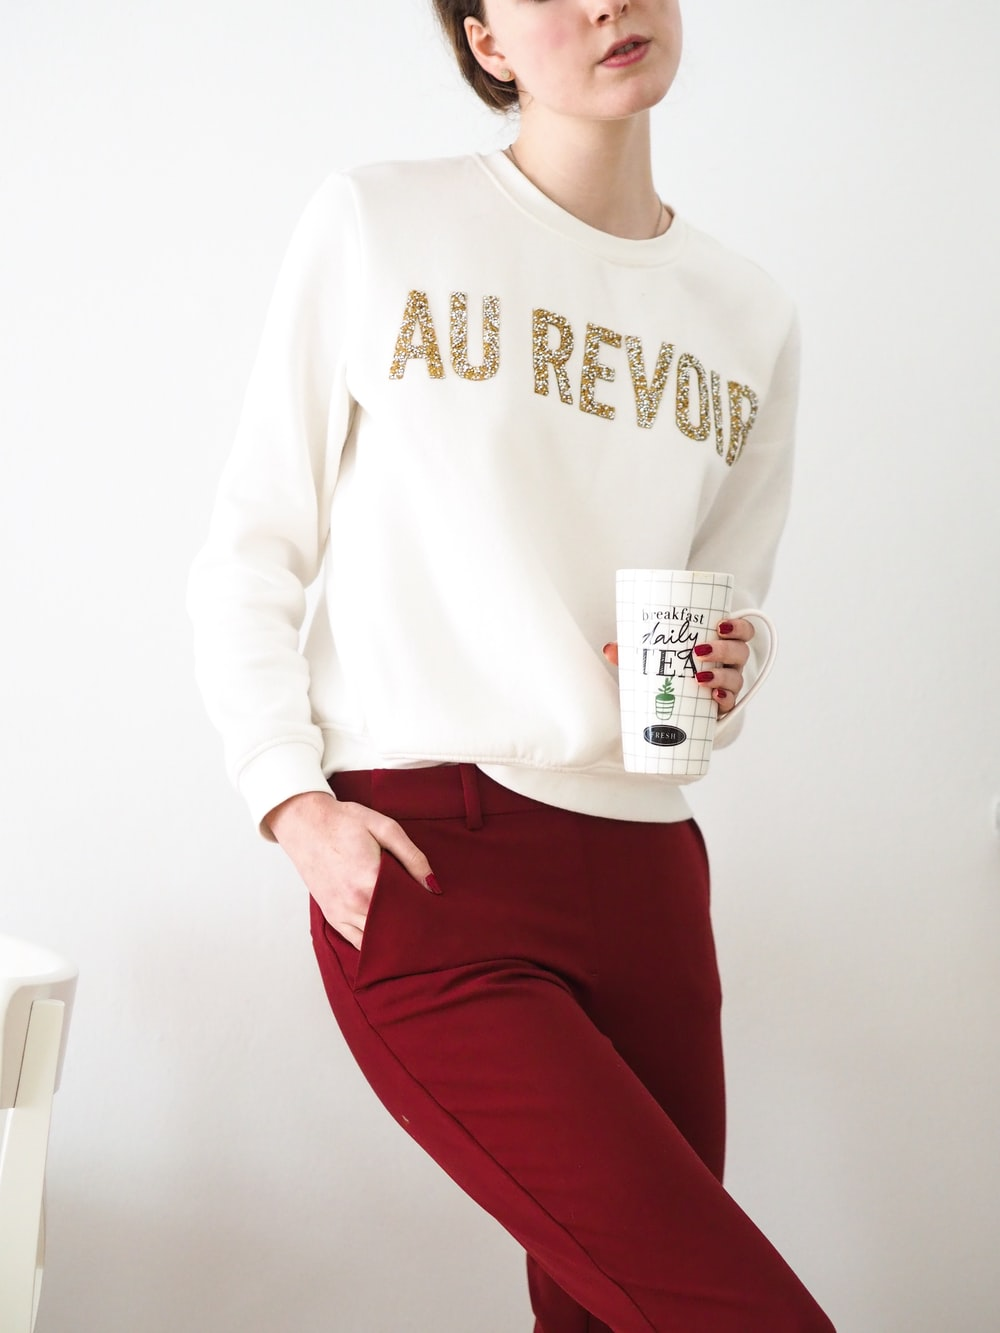 woman in white long sleeve shirt and red pants